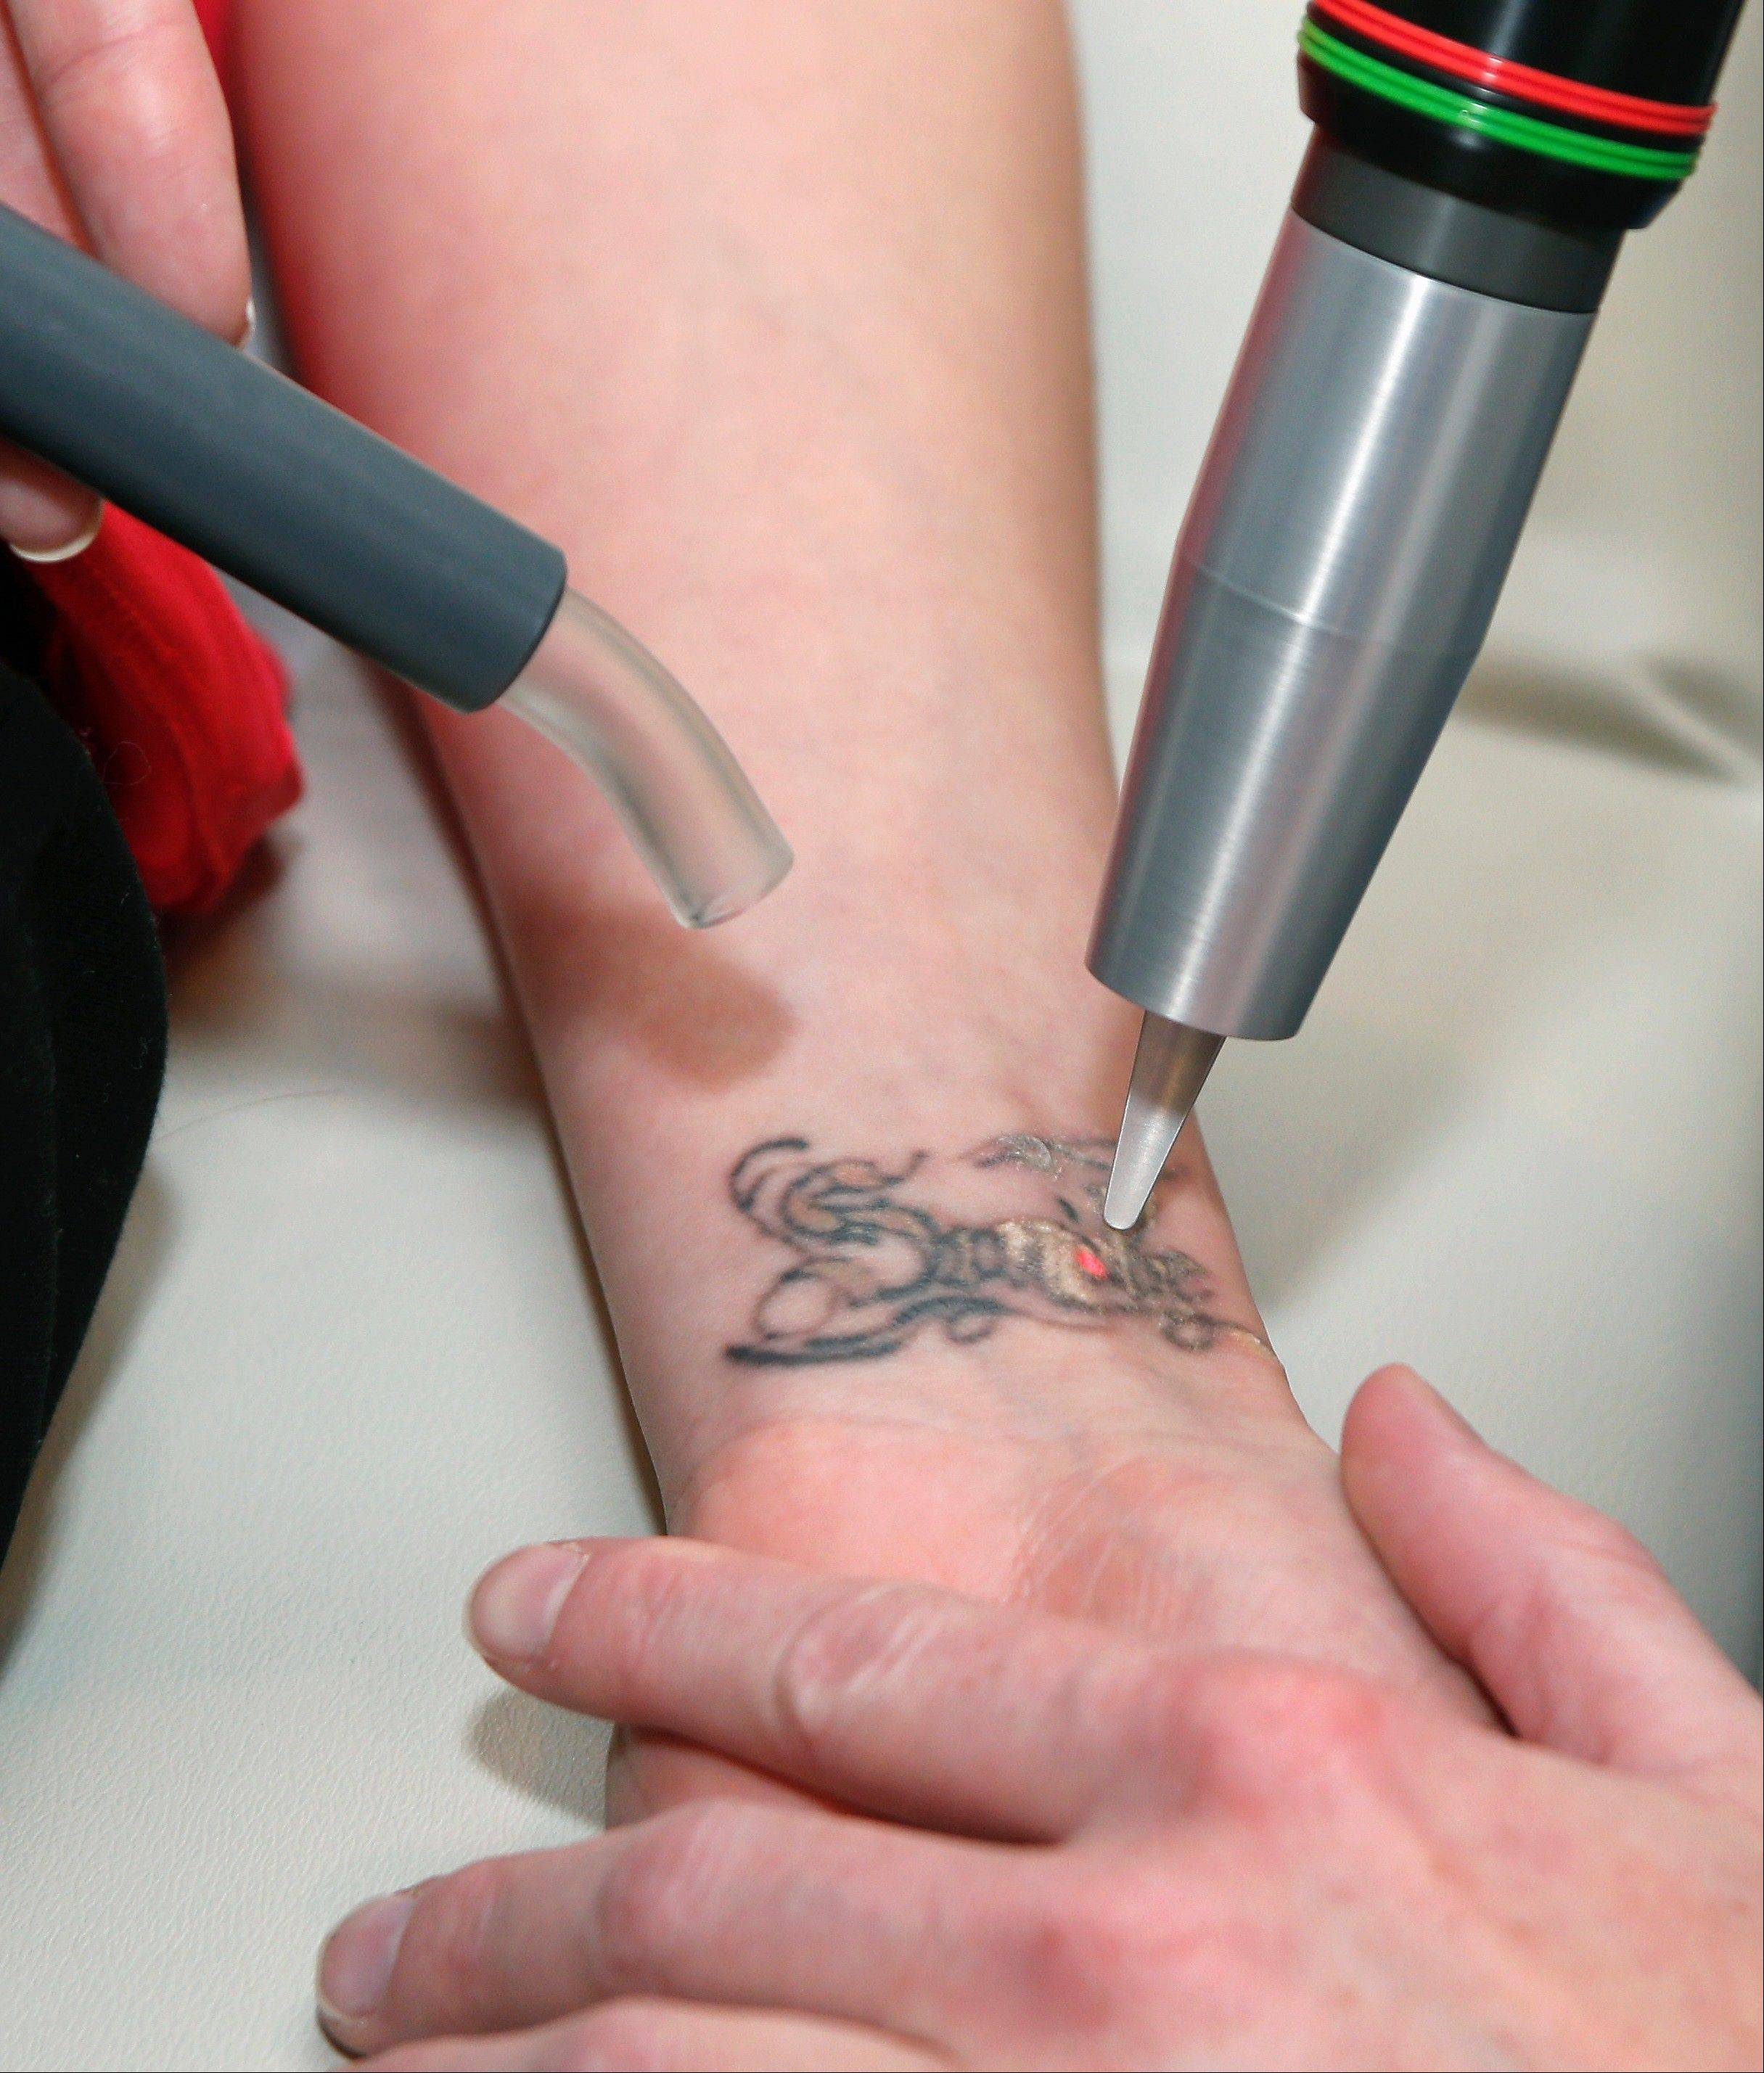 Physician's assistant Brittany Zimmerman uses a laser to remove a tattoo on Chelsea Robertson's wrist.